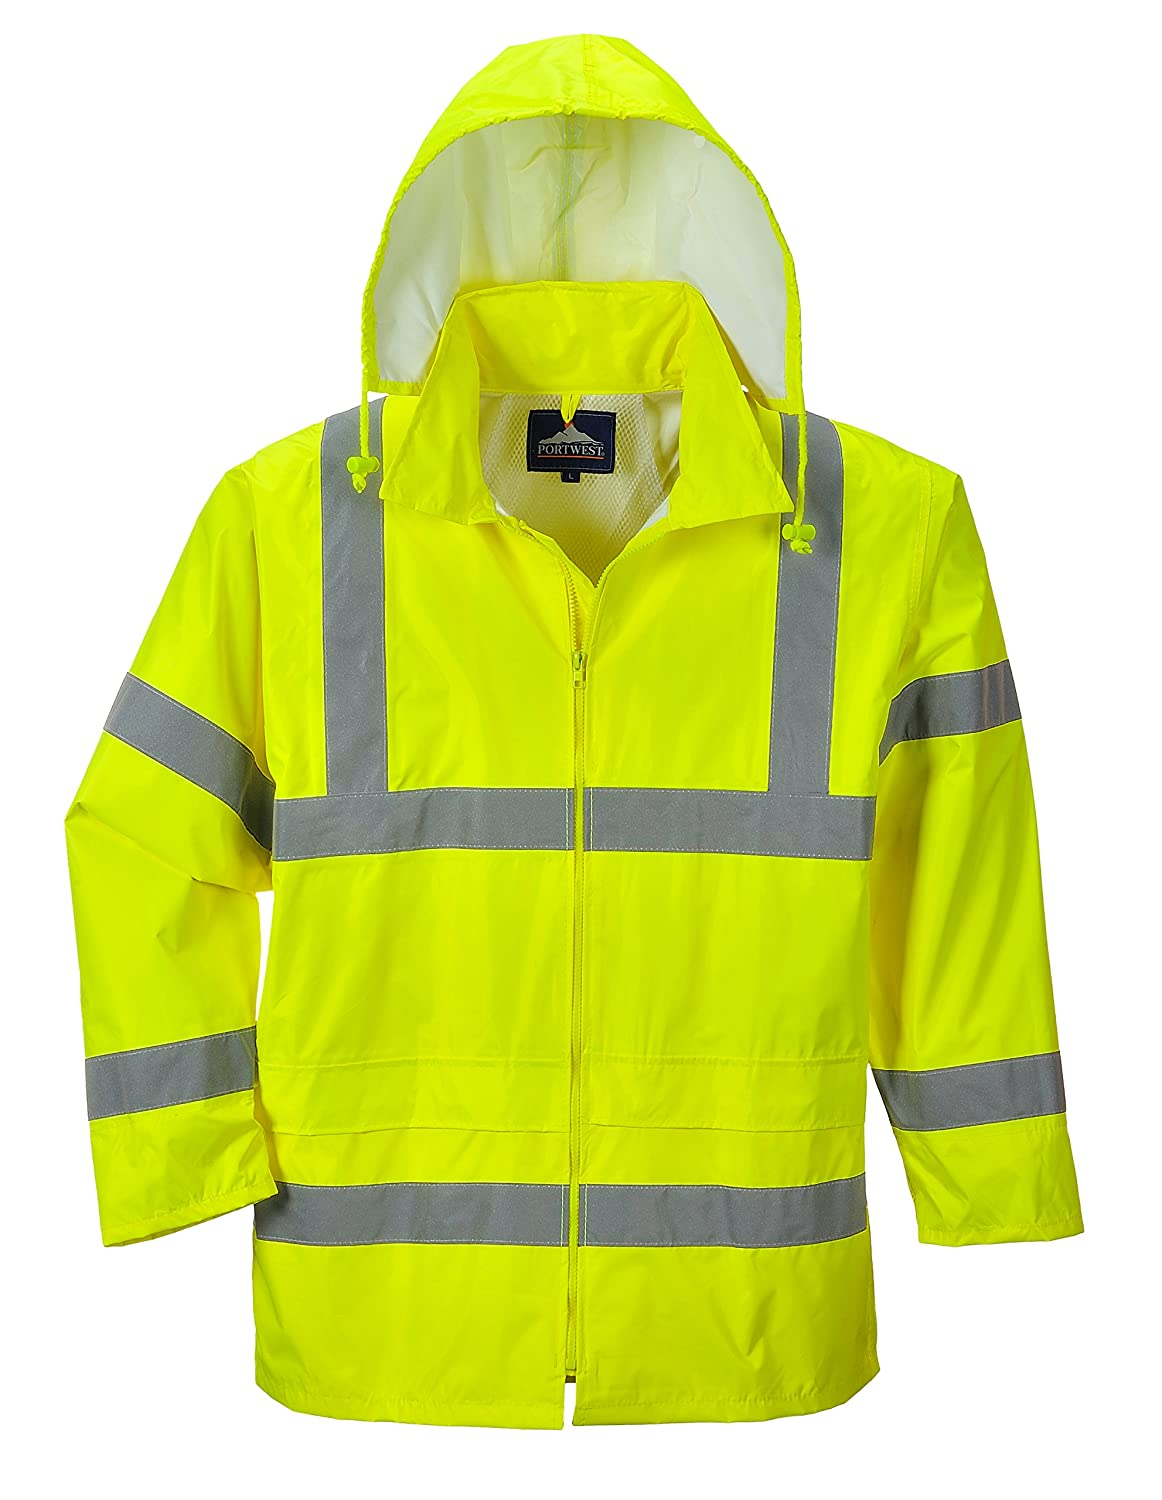 Portwest Waterproof Rain Jacket, Lightweight H-RALA2015-PW011